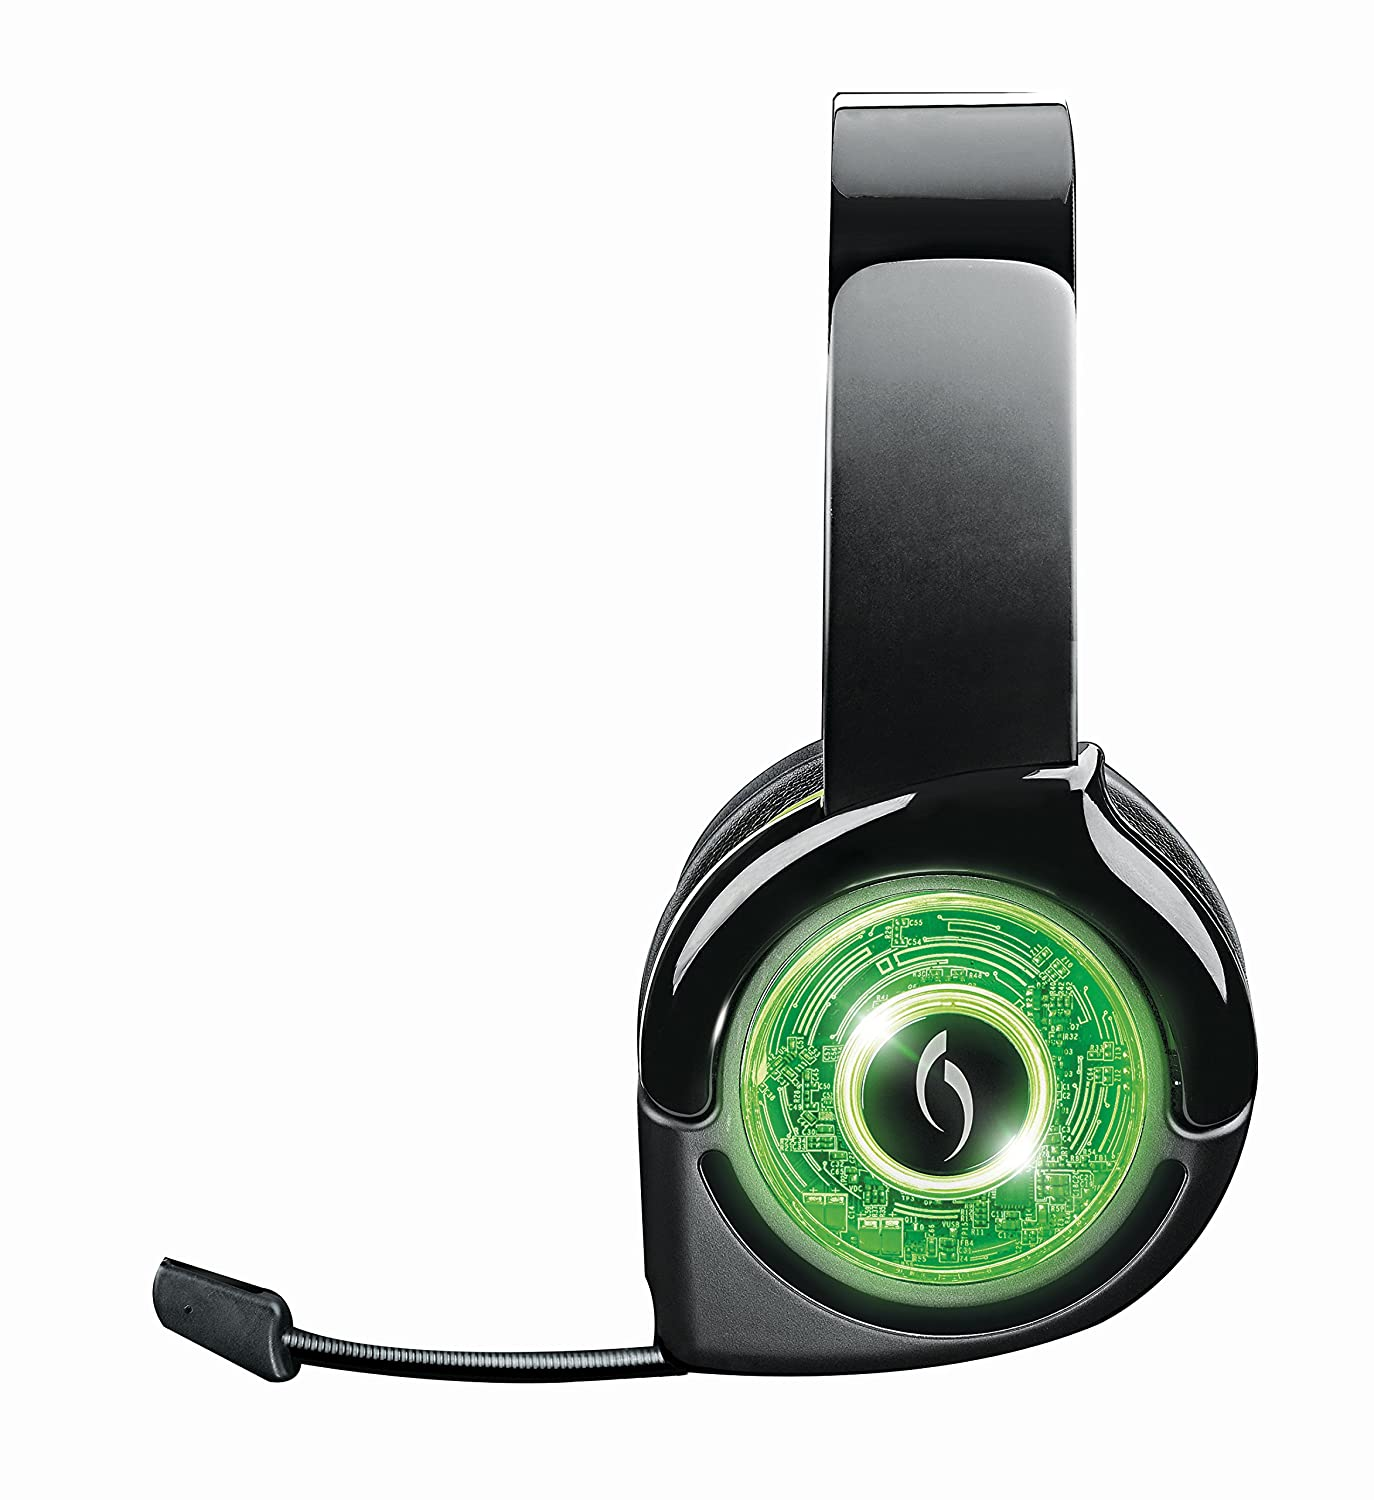 Pdp Afterglow Karga Gaming Headset For Xbox One Released